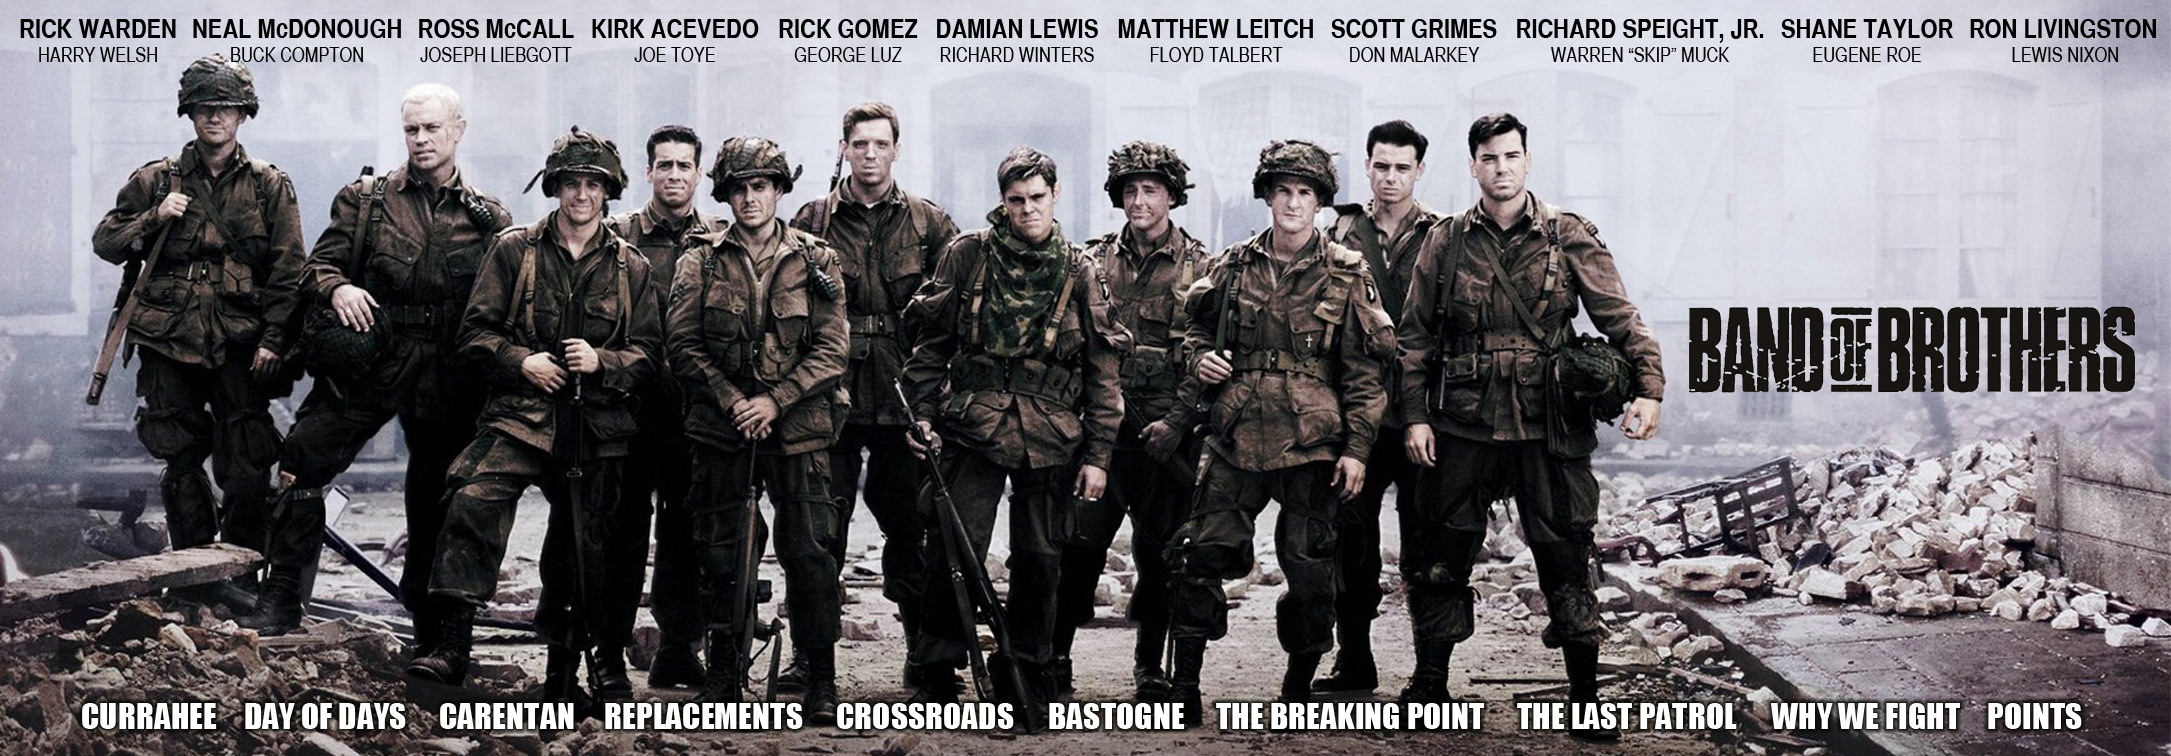 Band of brothers banner by social iconoclast on deviantart for The wallpaper company